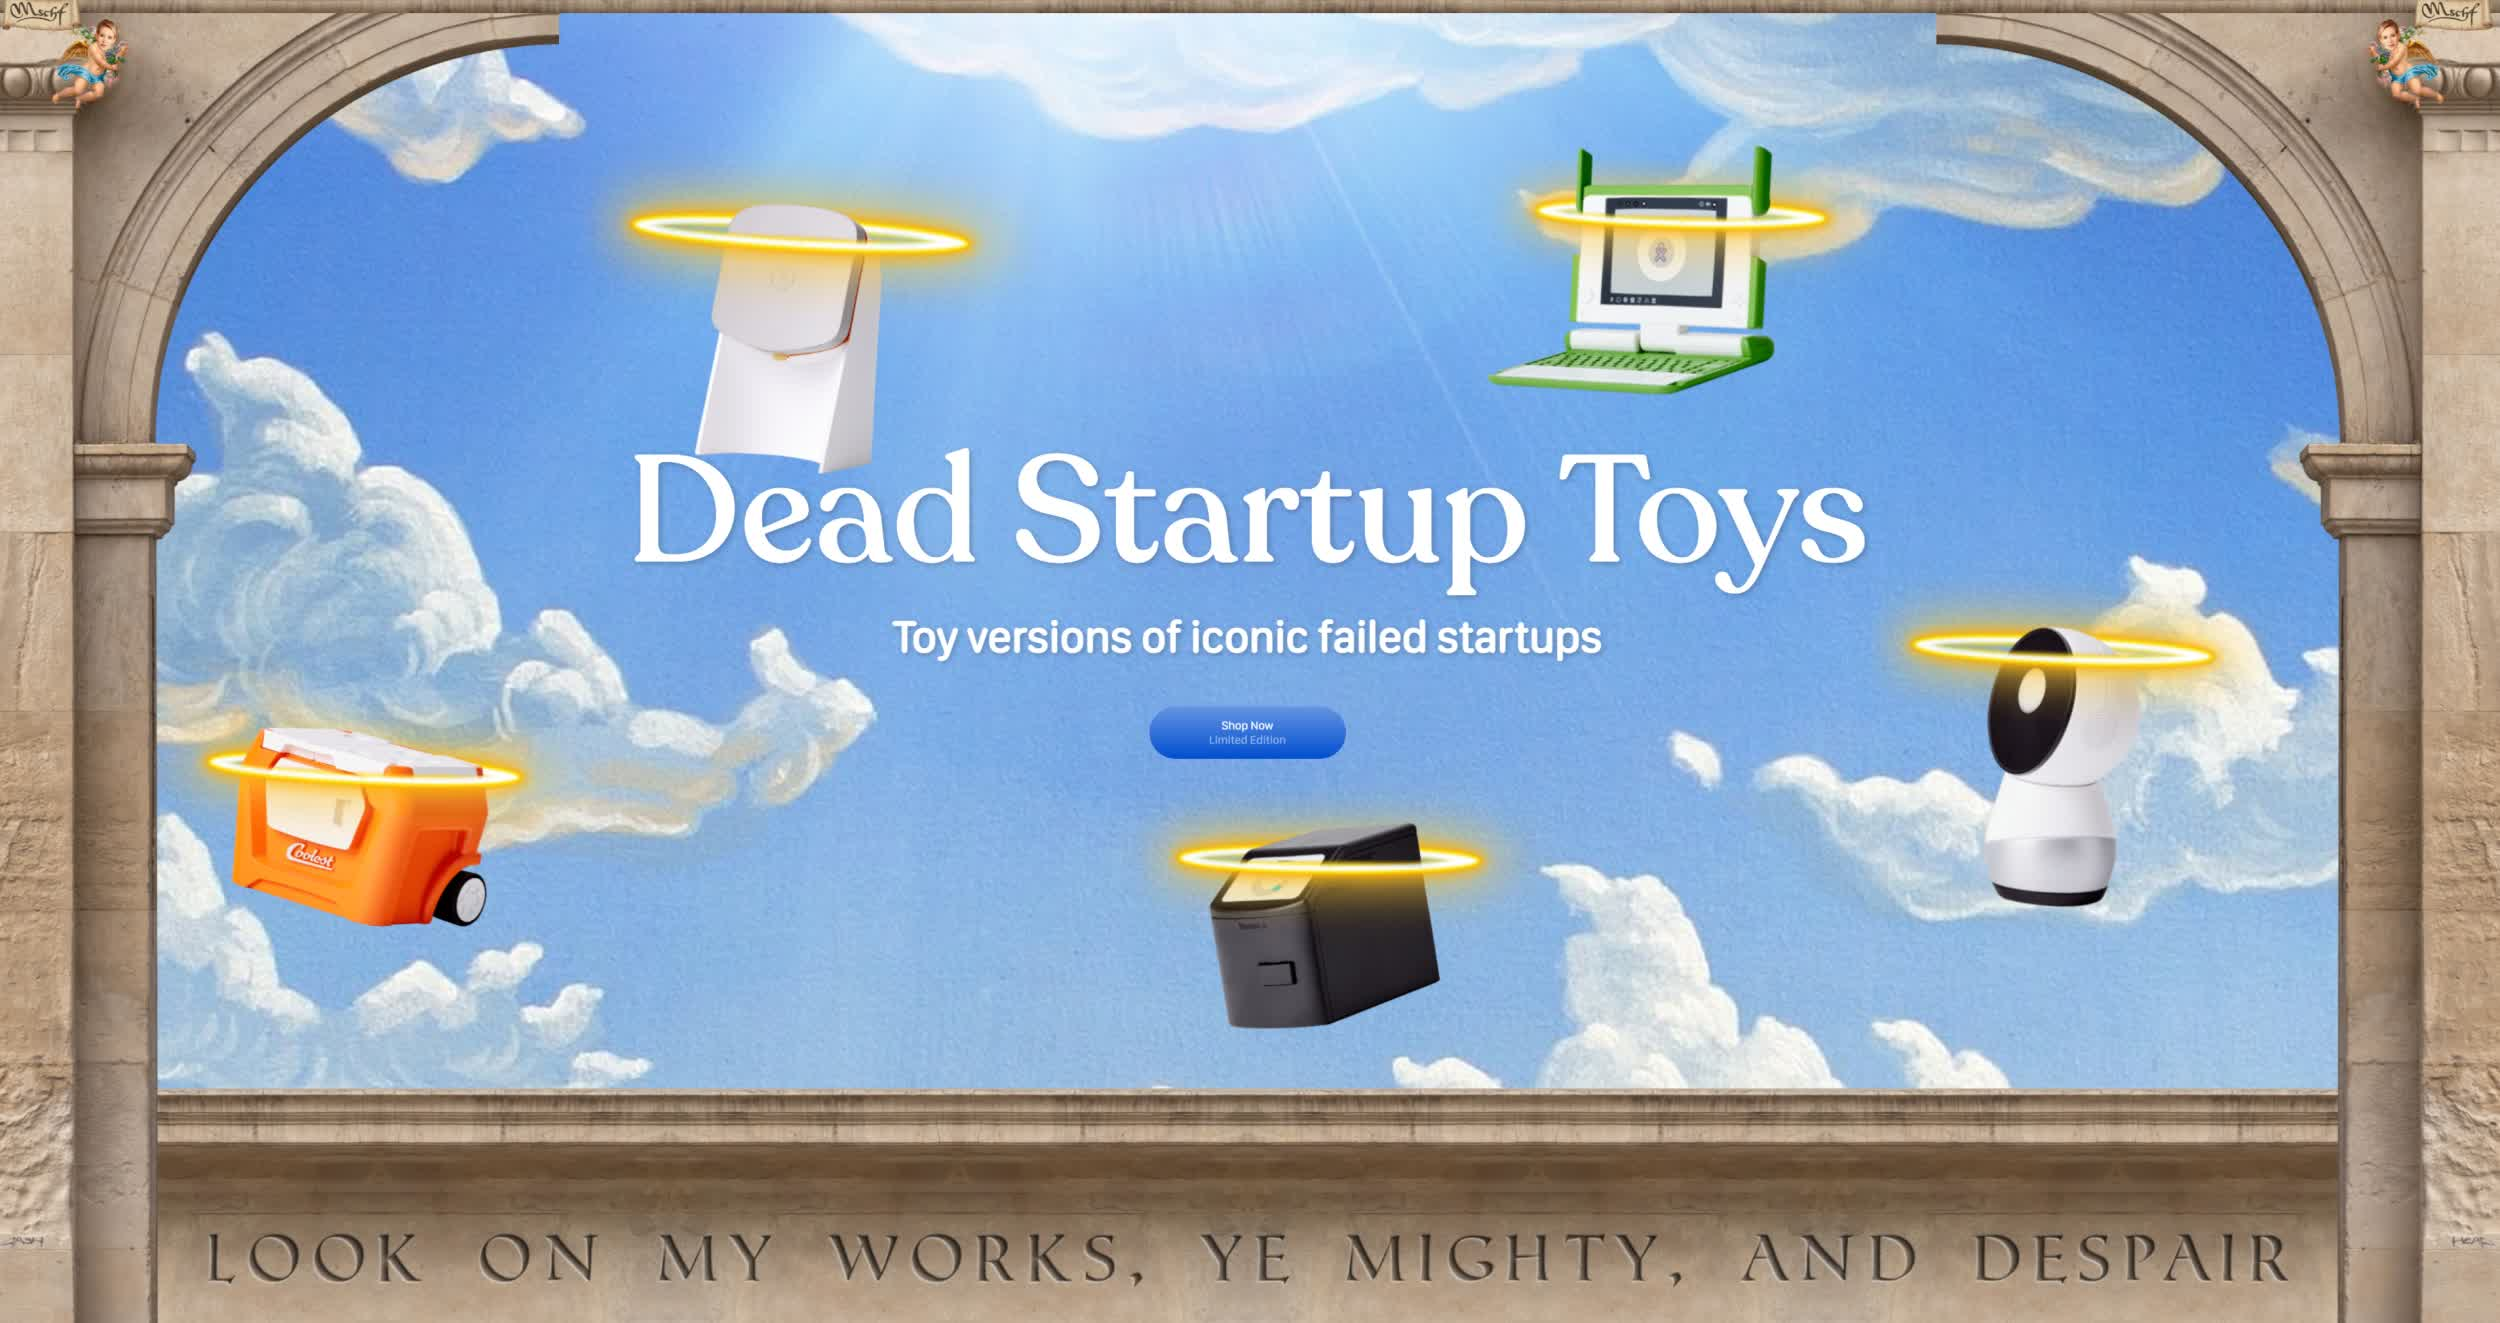 Dead Startup Toys are miniature versions of failed startups